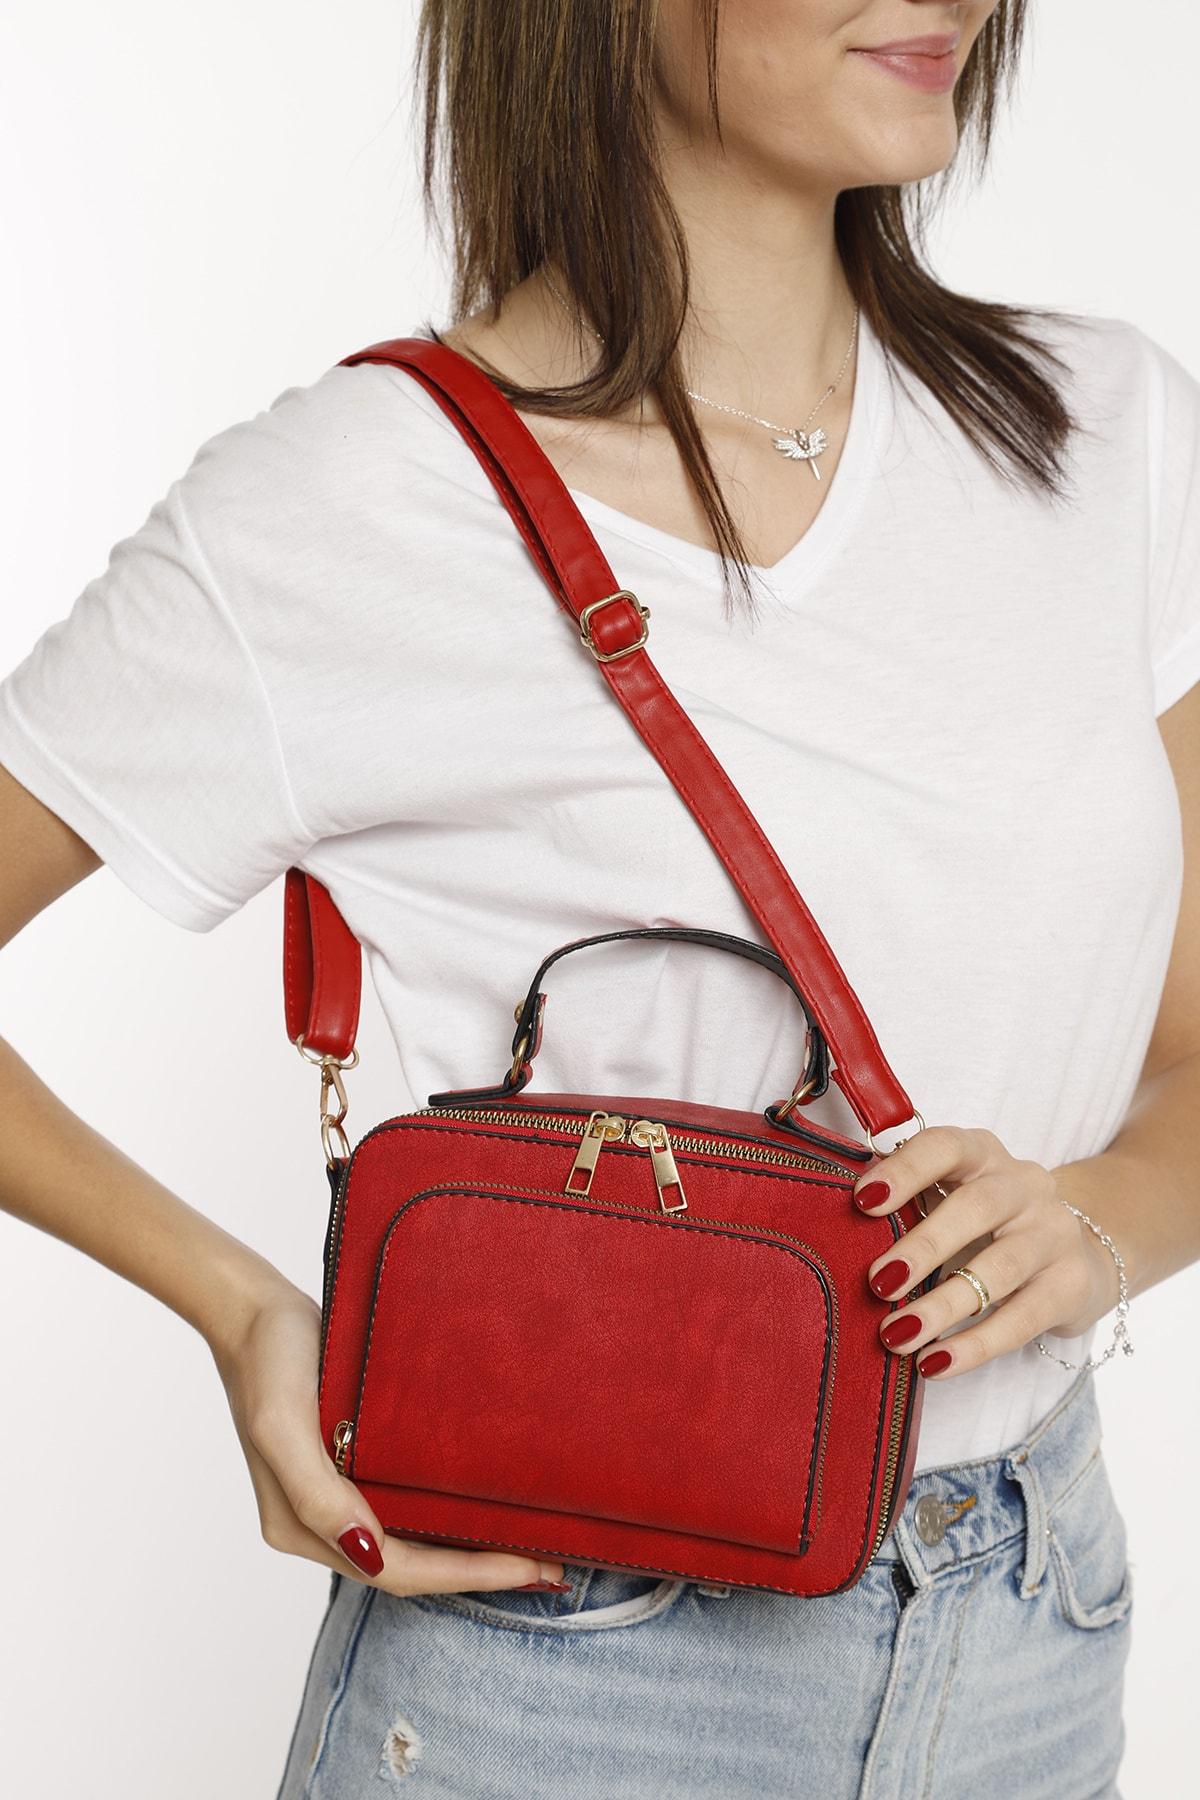 Red Multi Compartment Shoulder Bag Fashion Trend Shoulder Strap Waterproof Velvet Leather Casual Women's Shoulder Bag